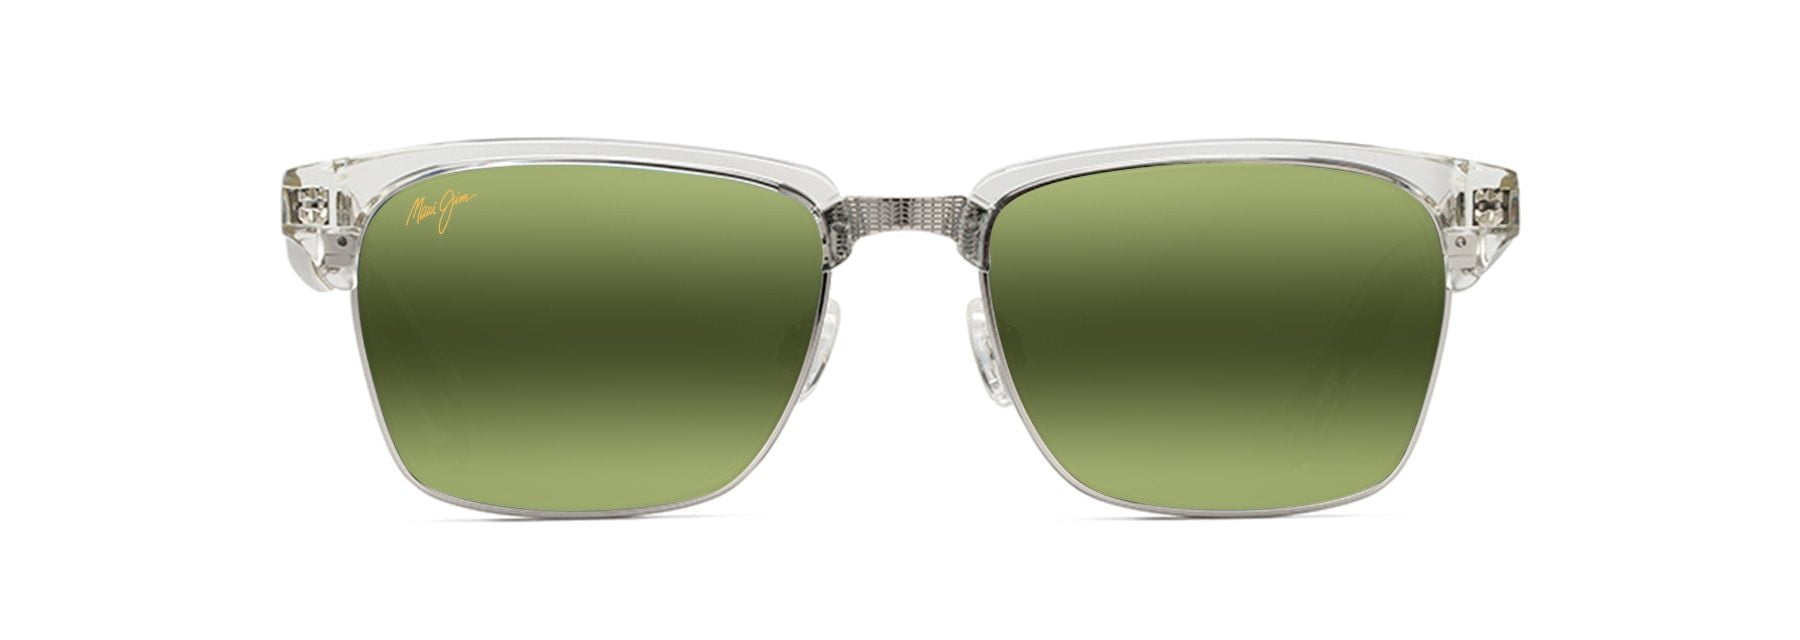 MyMaui Kawika MM257-012 Sunglasses